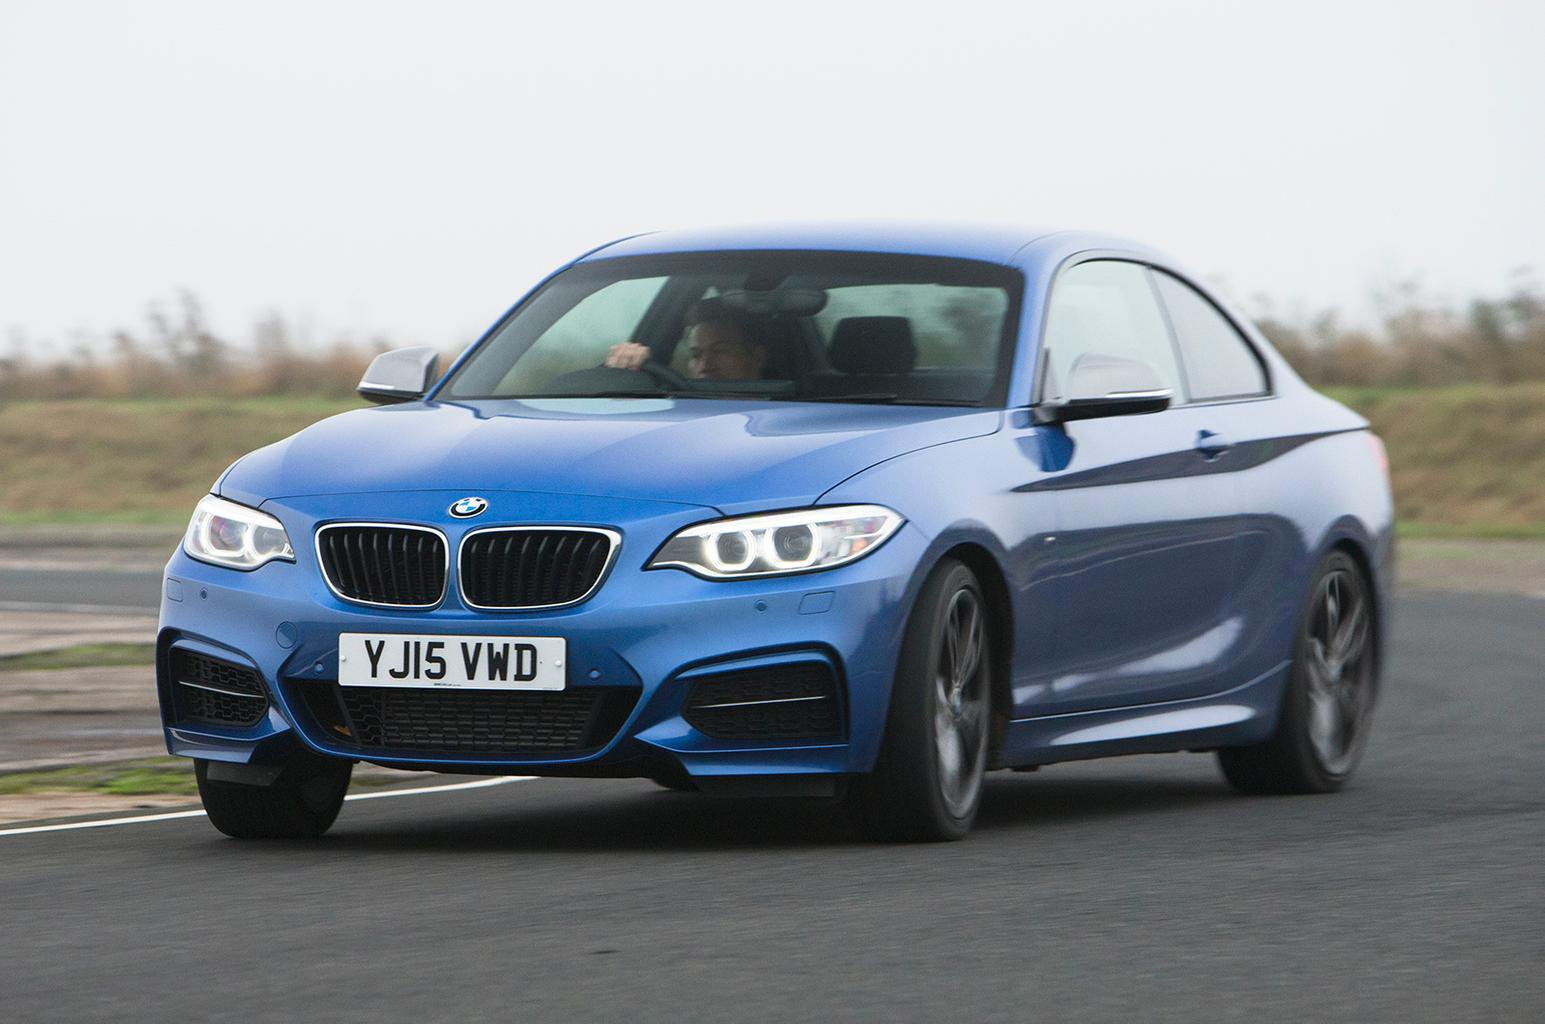 Used test: BMW M235i vs Ford Mustang